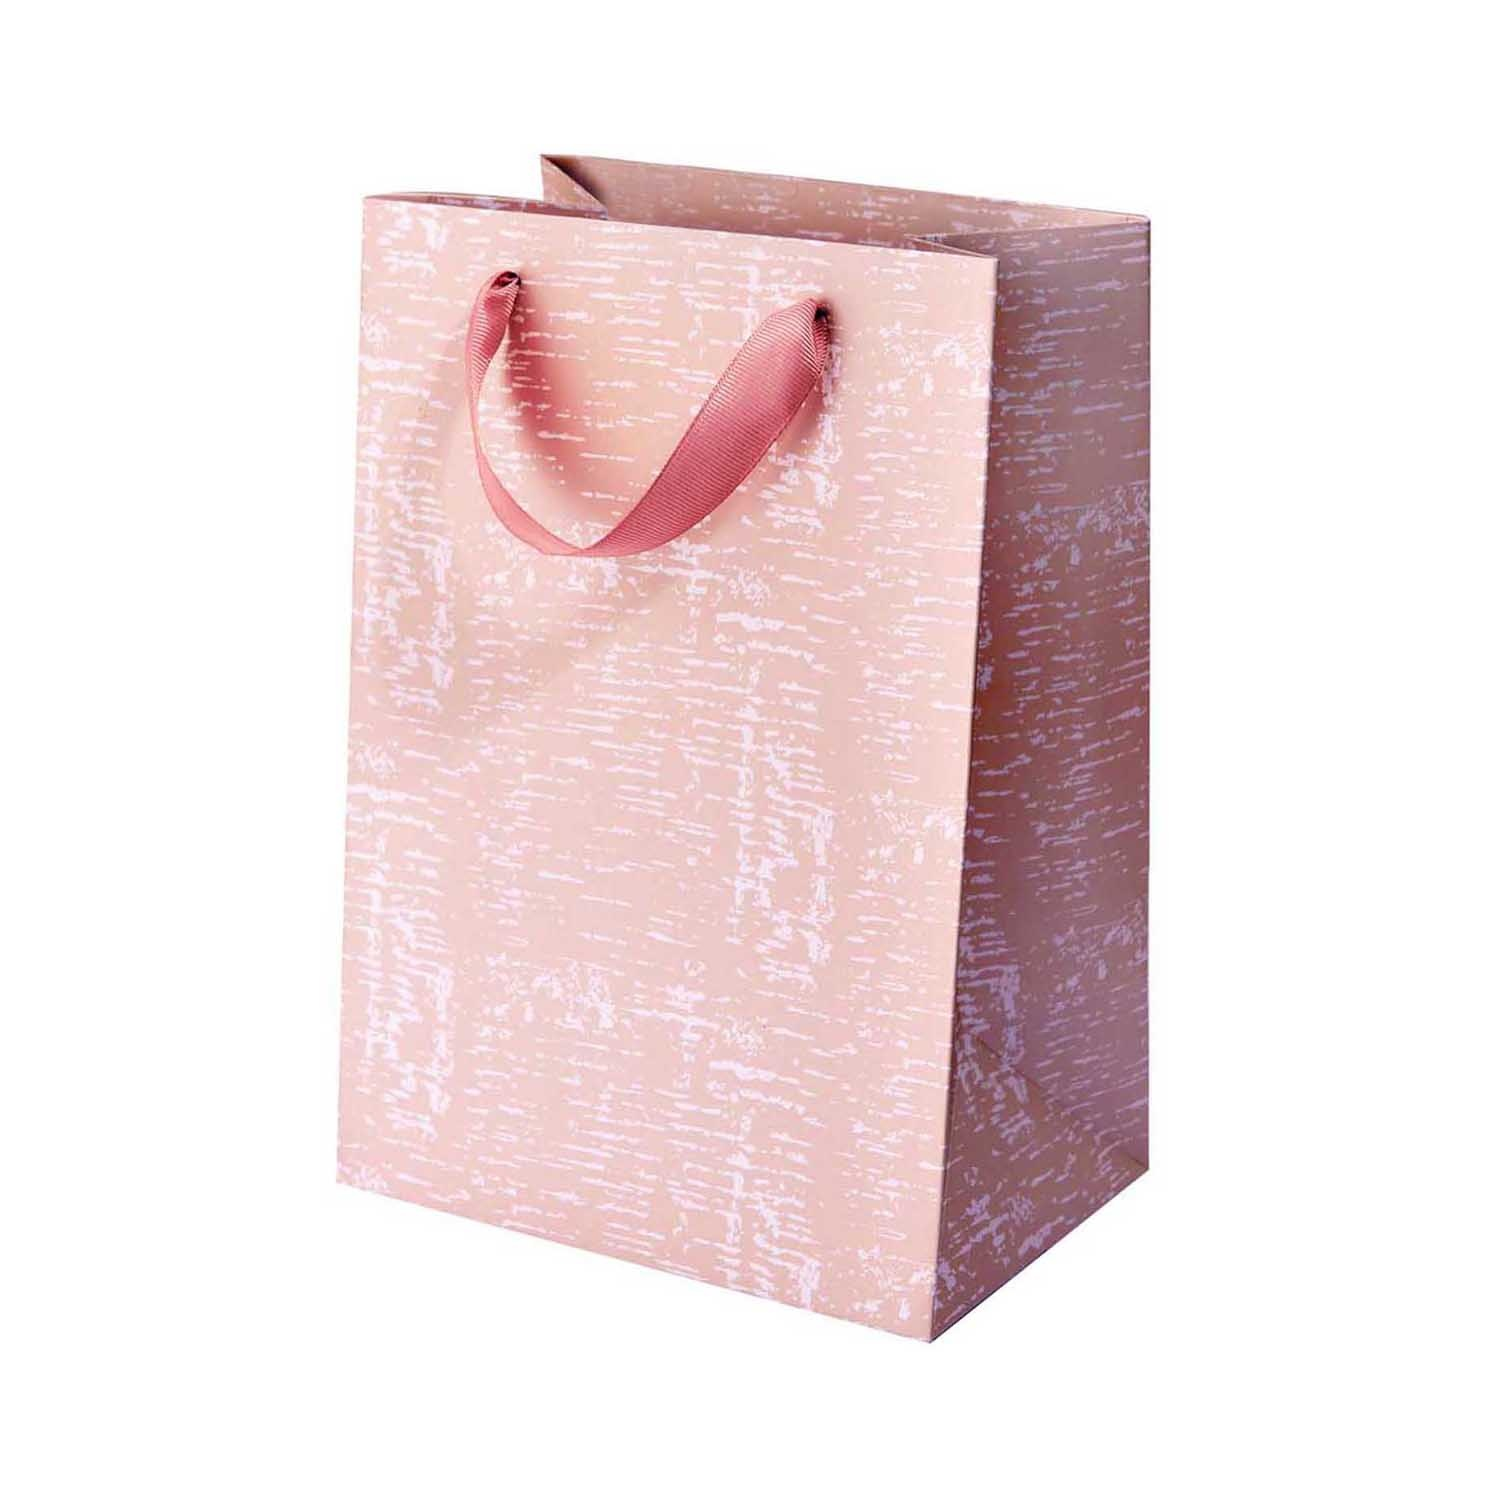 Rico NAY GIFT BAG, STRUCTURE, LILAC , FSC MIX 18 X 26 X 12 CM